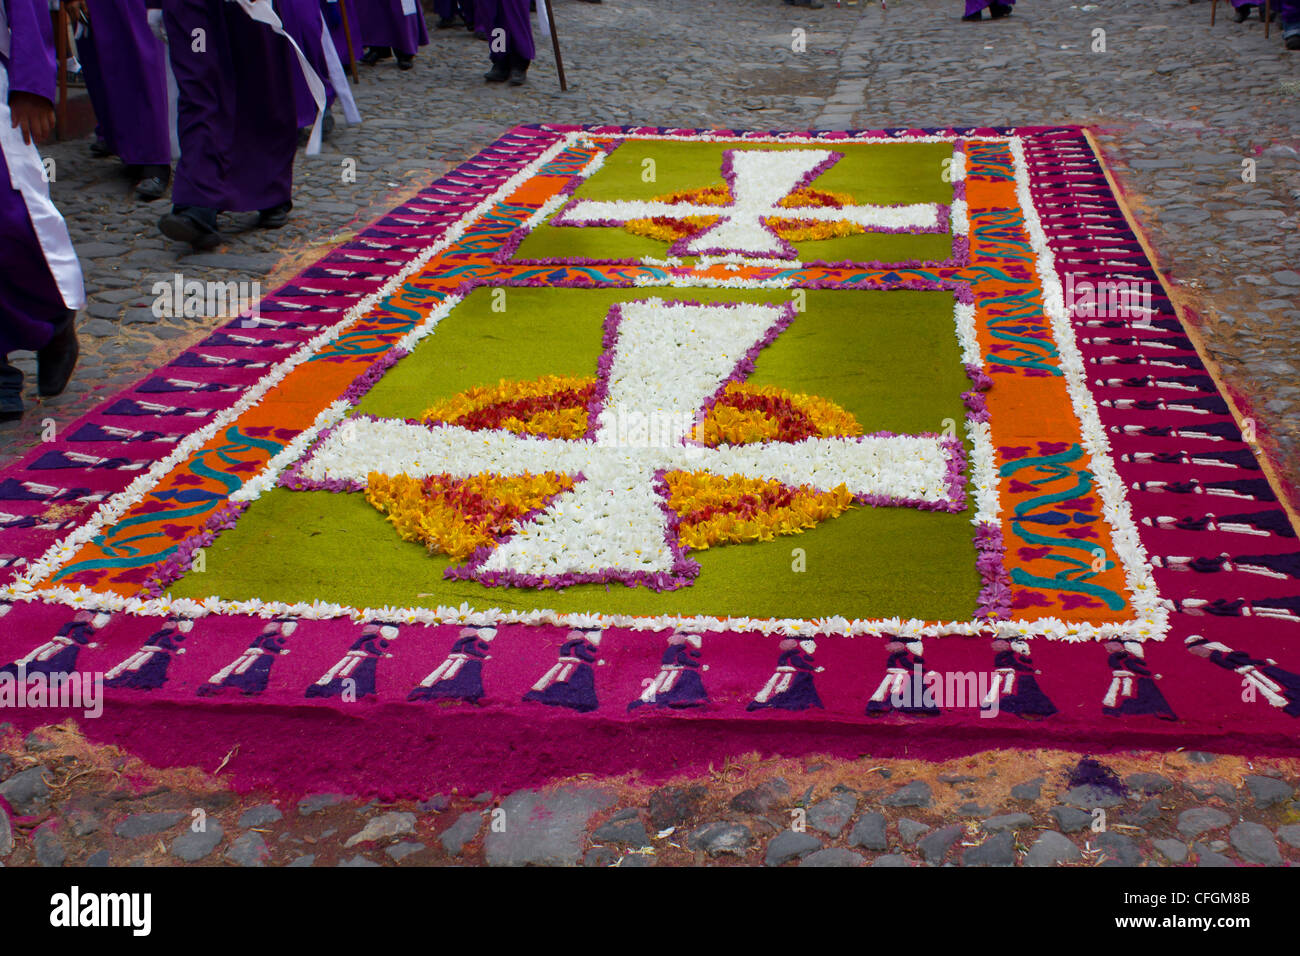 Colorful Carpet - Stock Image